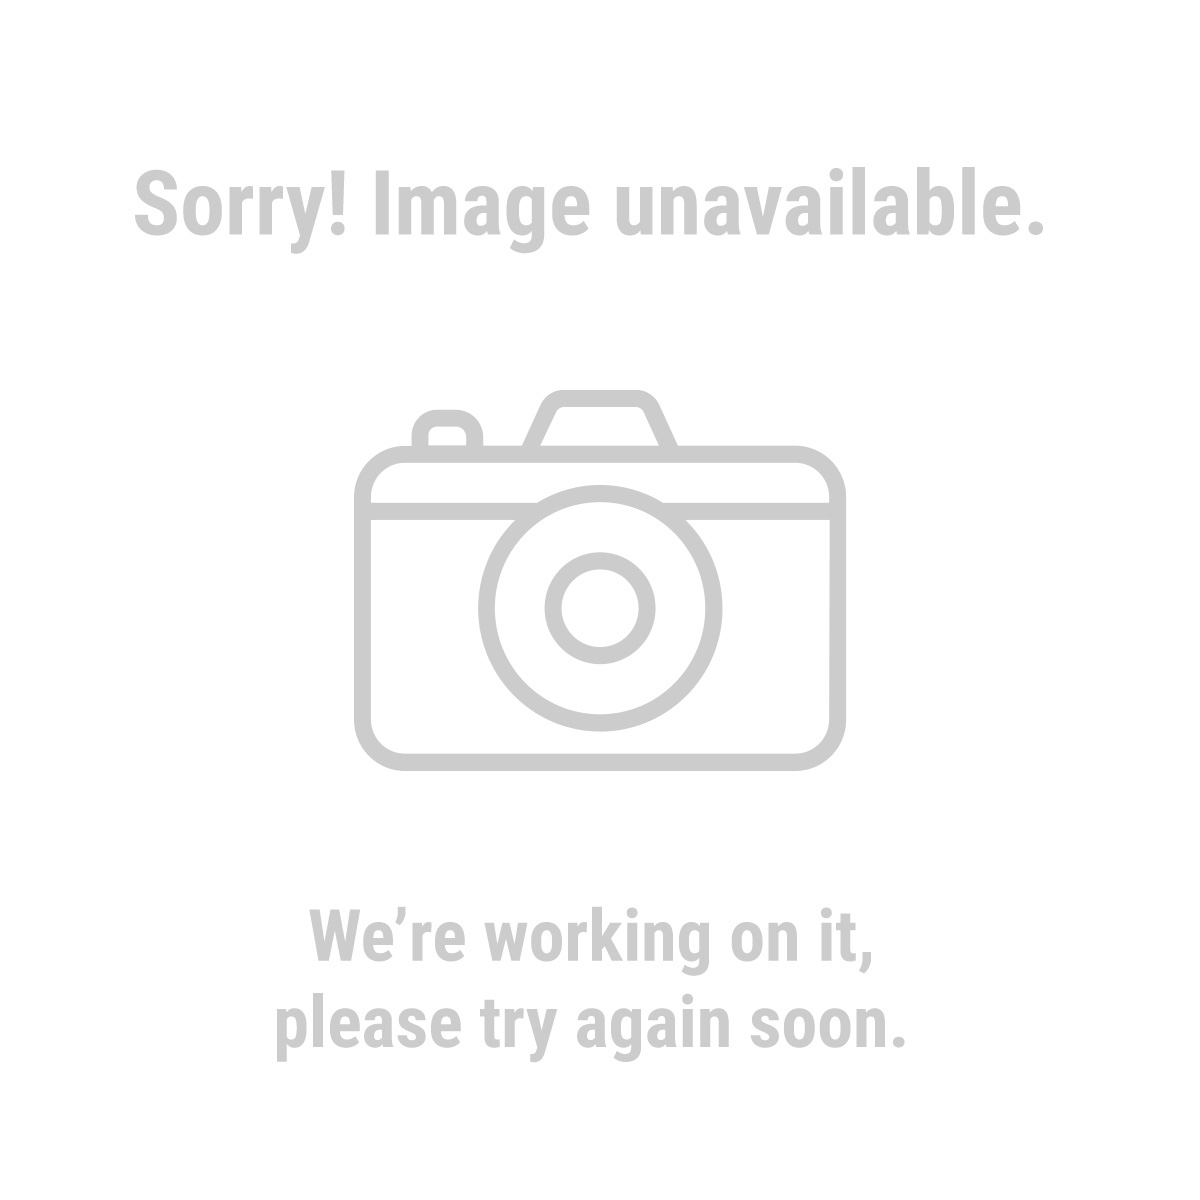 97130 2 Piece Metal Wheel Chocks